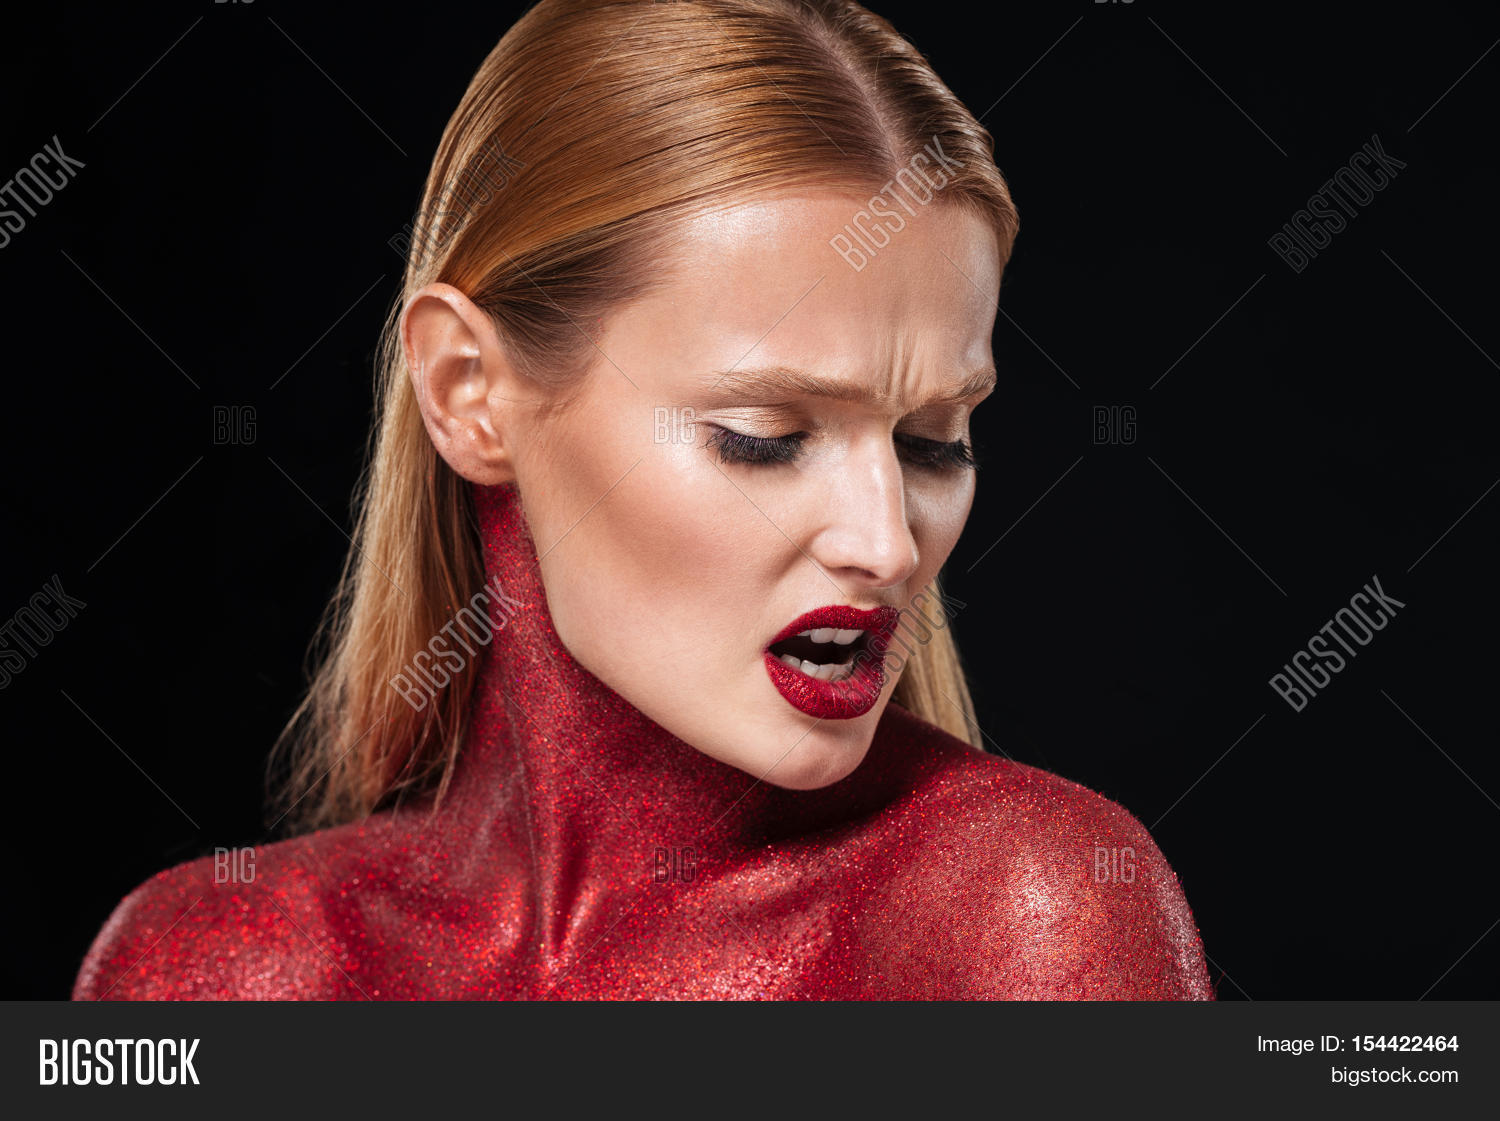 Red Bodypaint Close Image Photo Free Trial Bigstock